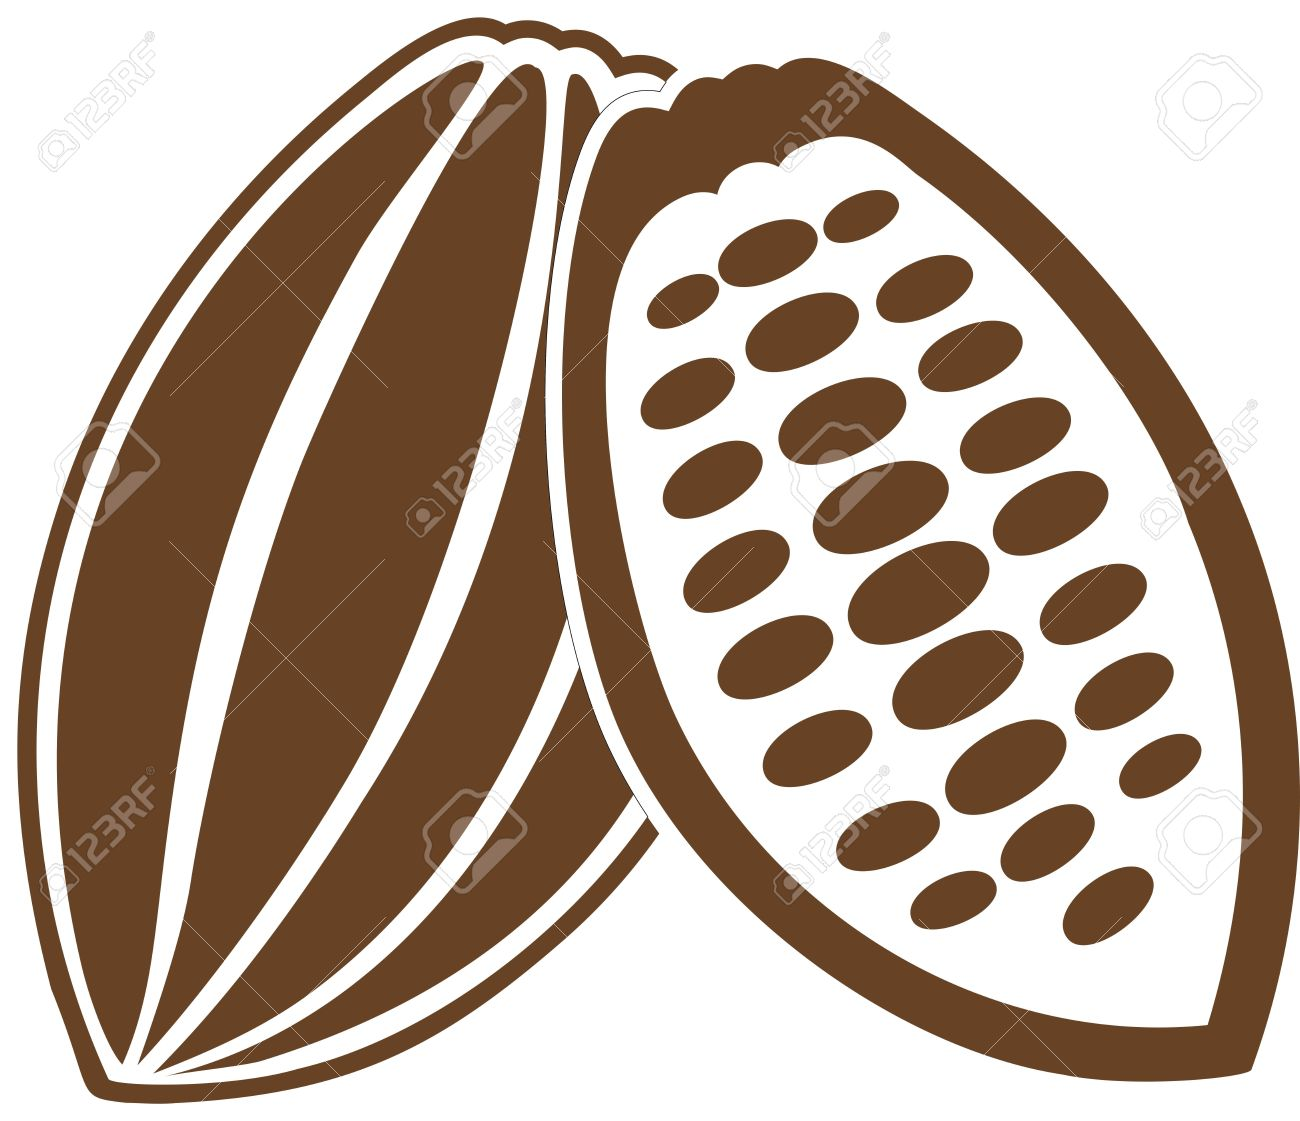 Beans clipart cocoa bean Green clipart Cocoa With collection